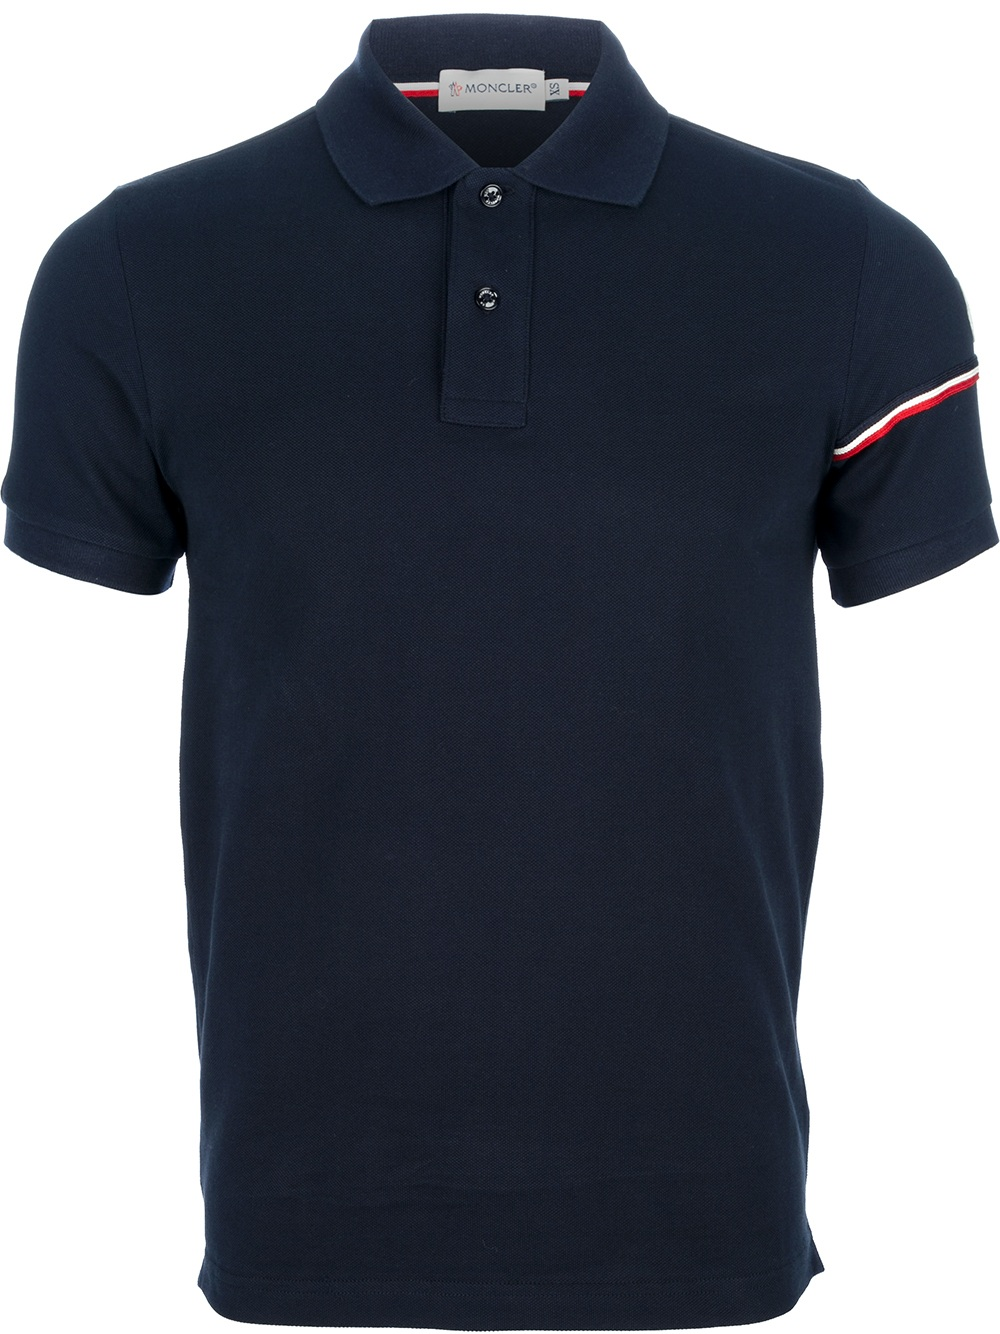 0ae8764e3 Lyst - Moncler Classic Polo Shirt in Blue for Men